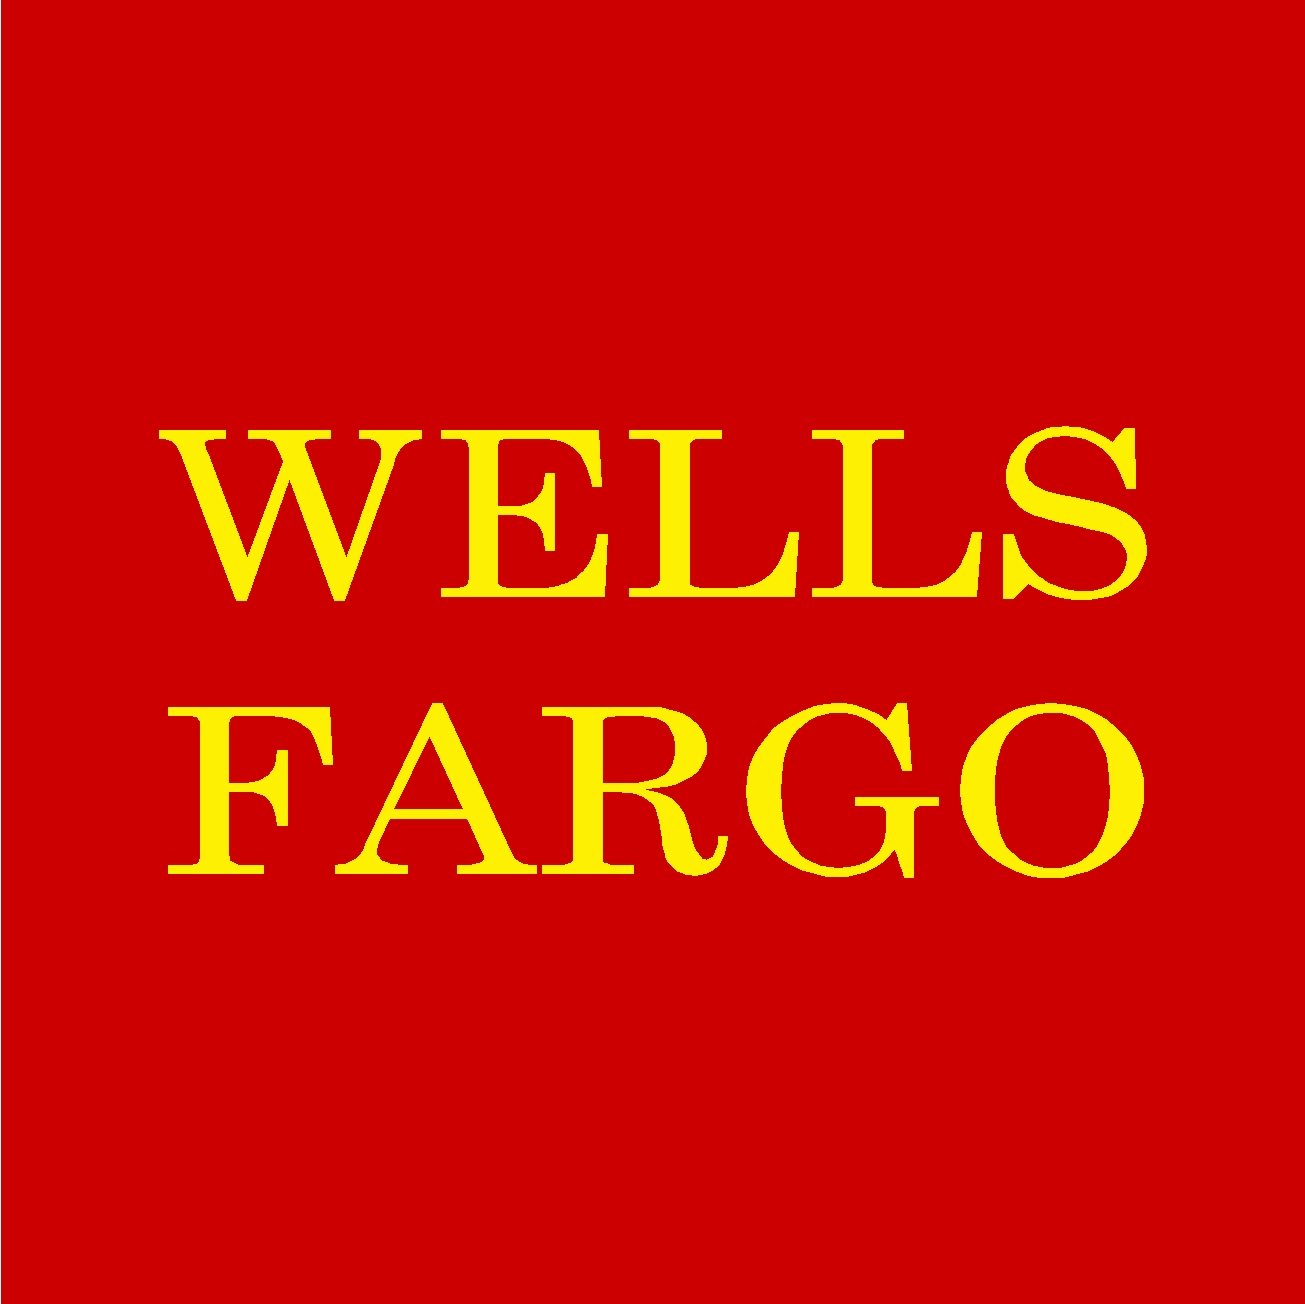 zacks-investment-research-downgrades-wells-fargo-038-co-wfc-to-sell.jpg